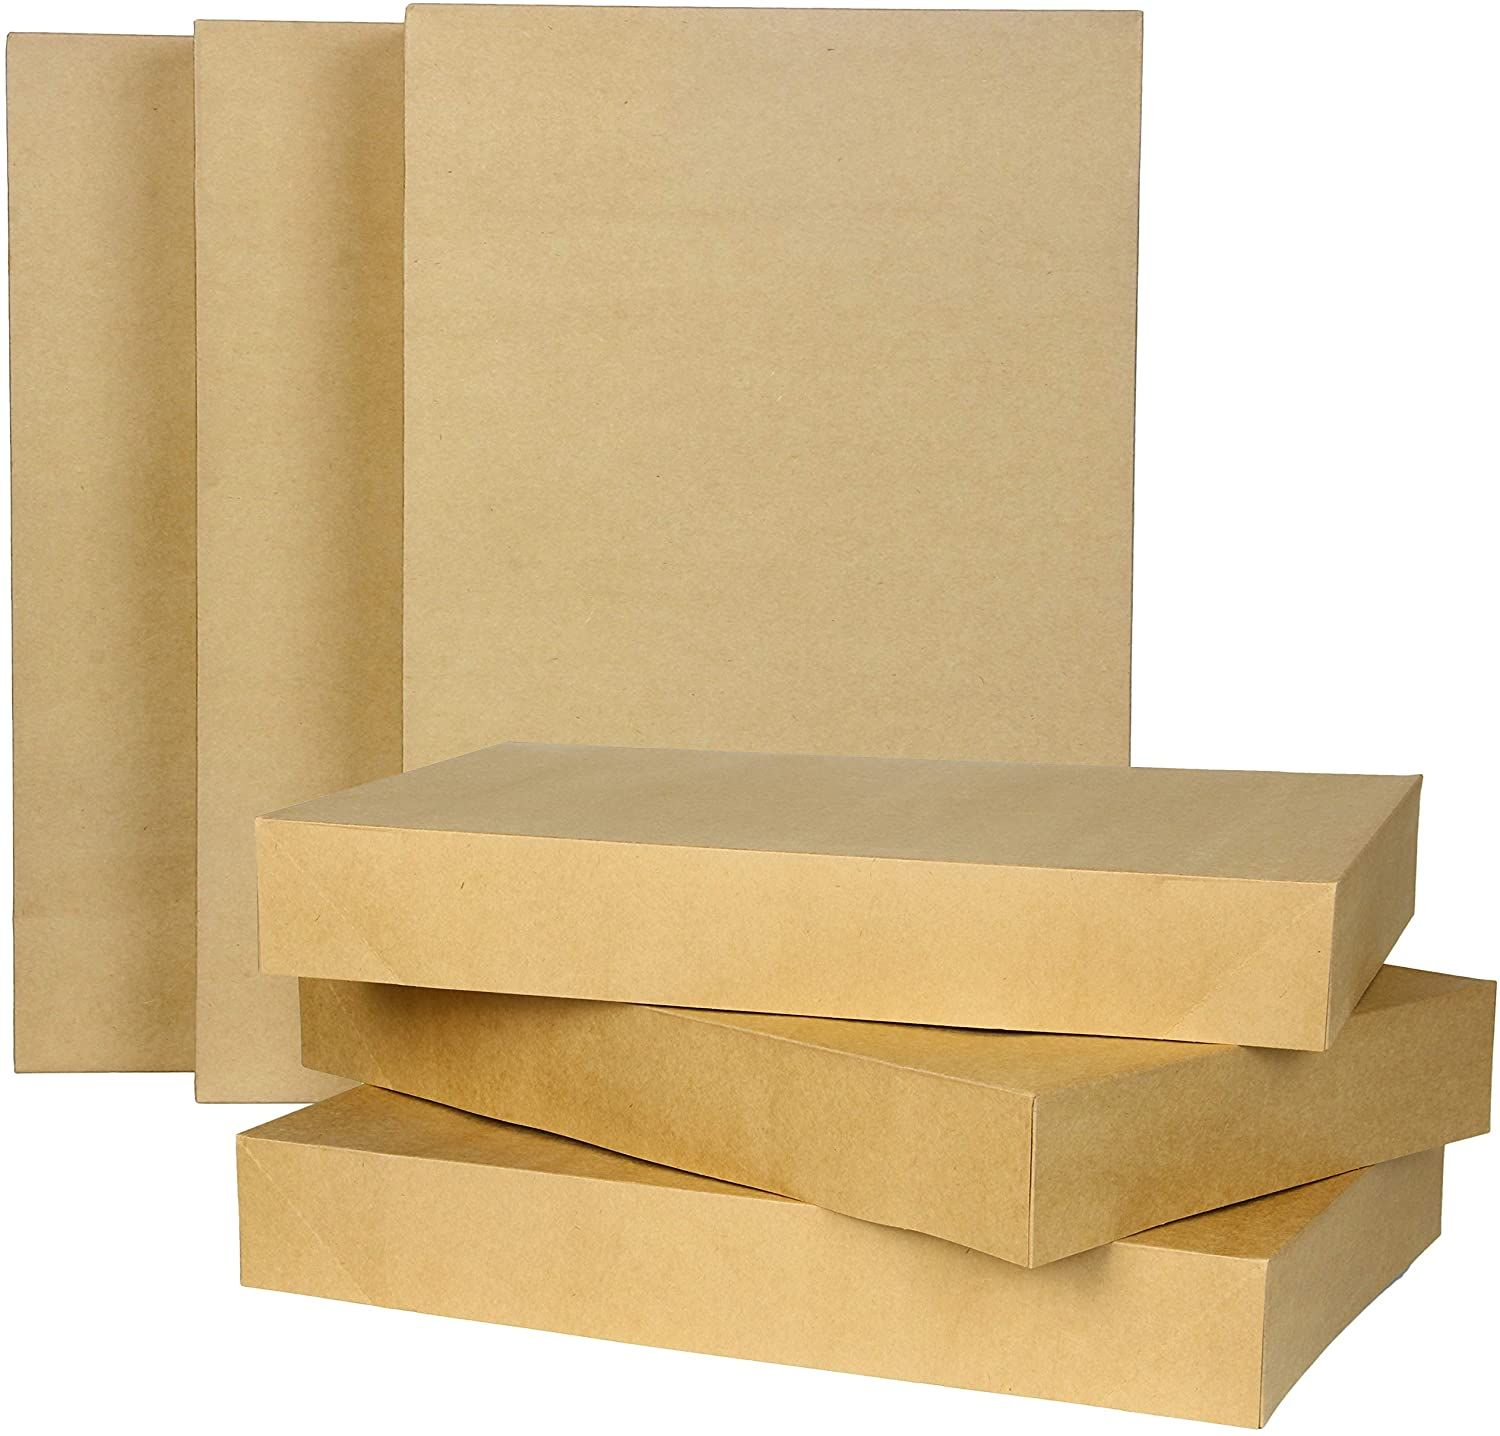 Cardboard Paper Rigid Holiday Packaging Gift Boxes Manufacturer